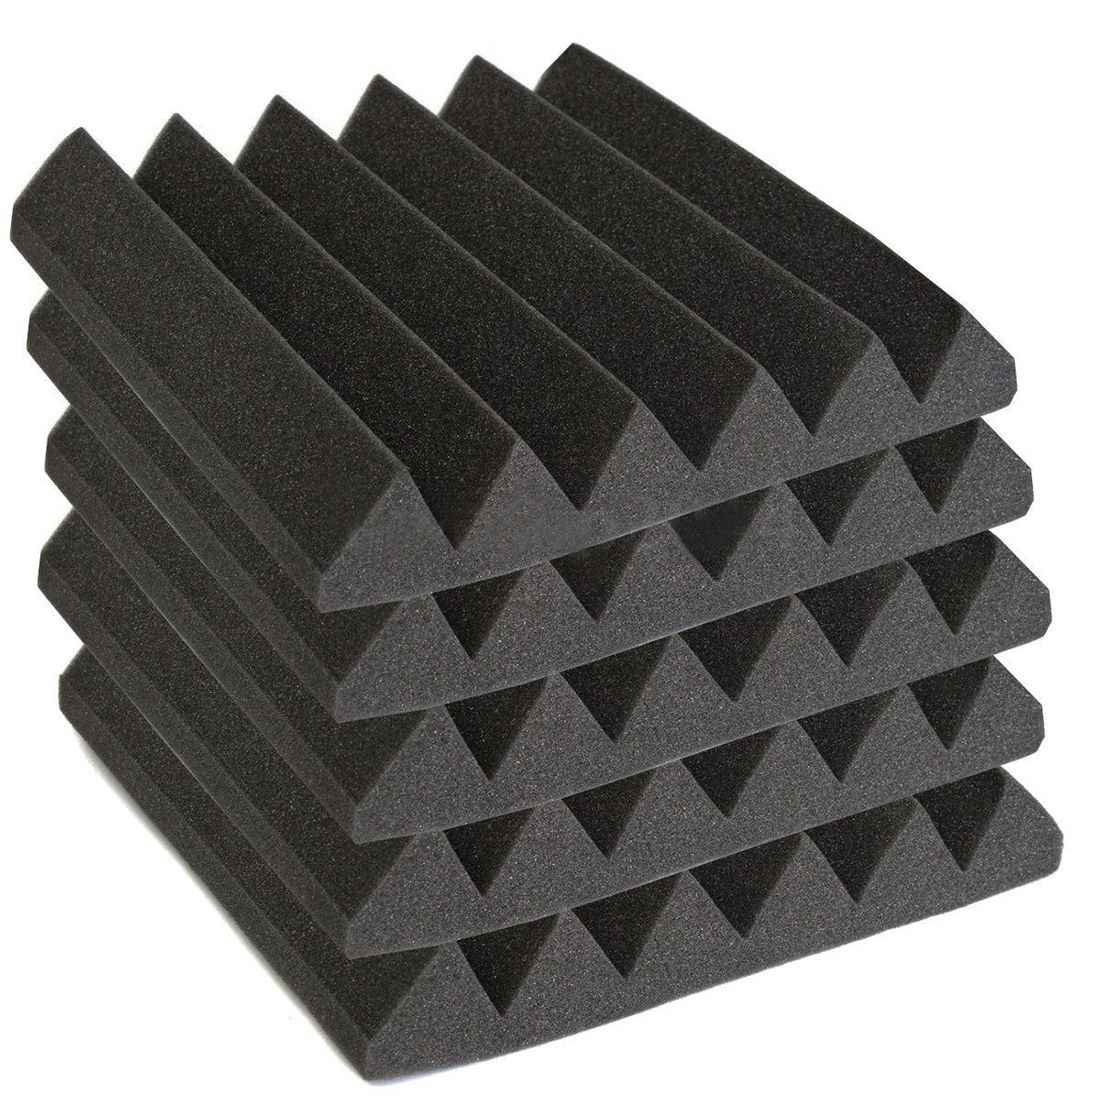 12 Pack Acoustic Wedge Studio Foam Sound Absorption Wall Panels 2 inch x 12 inch x 12 inch